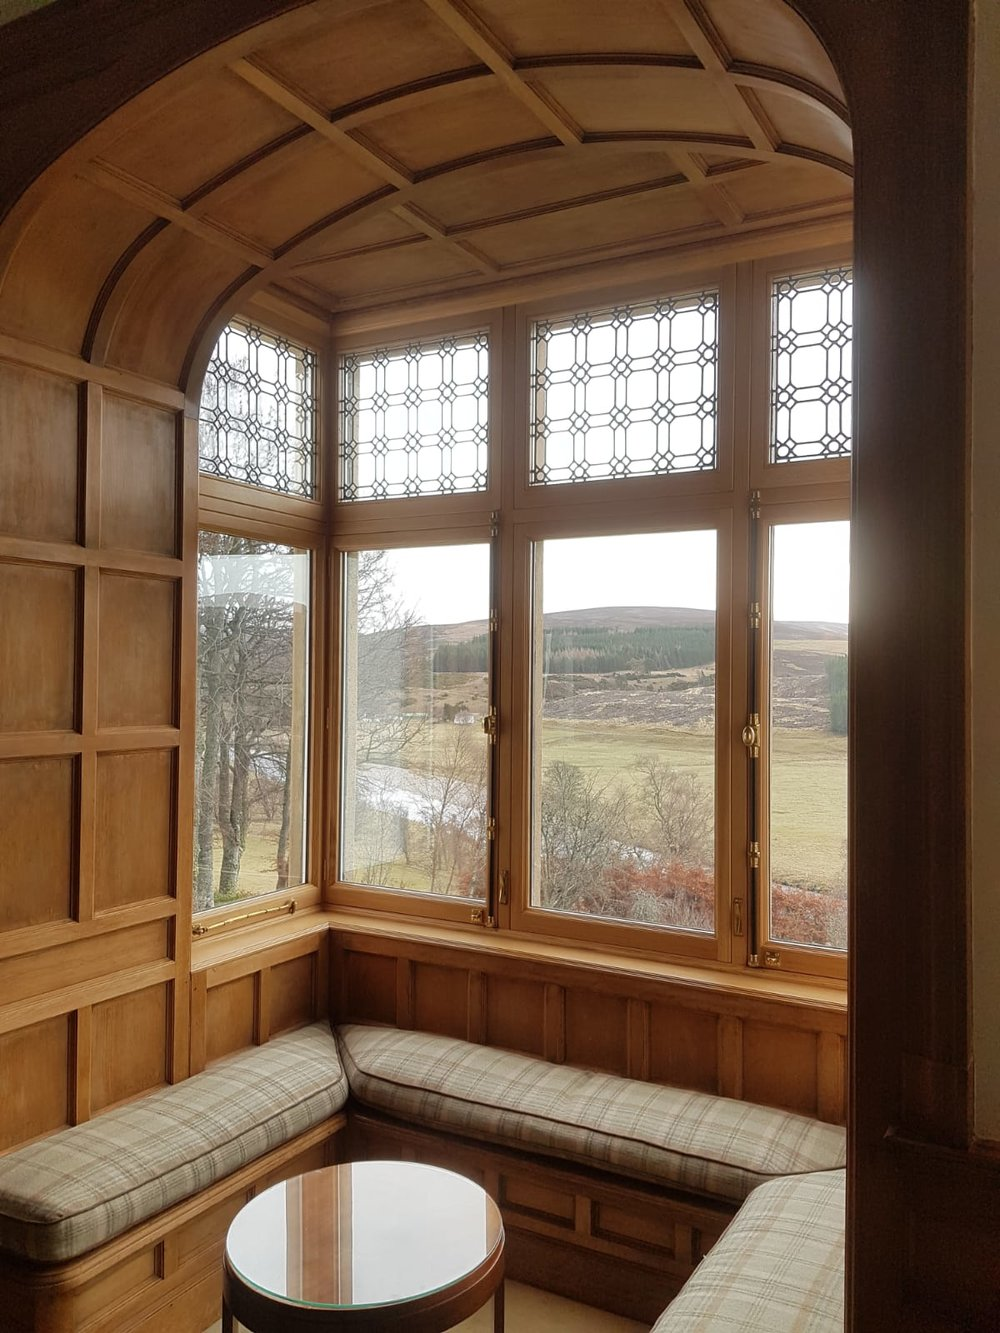 Replacement double glazed, oak framed windows for a period house in Inverness-shire. Existing leaded glass restored and reinstated.